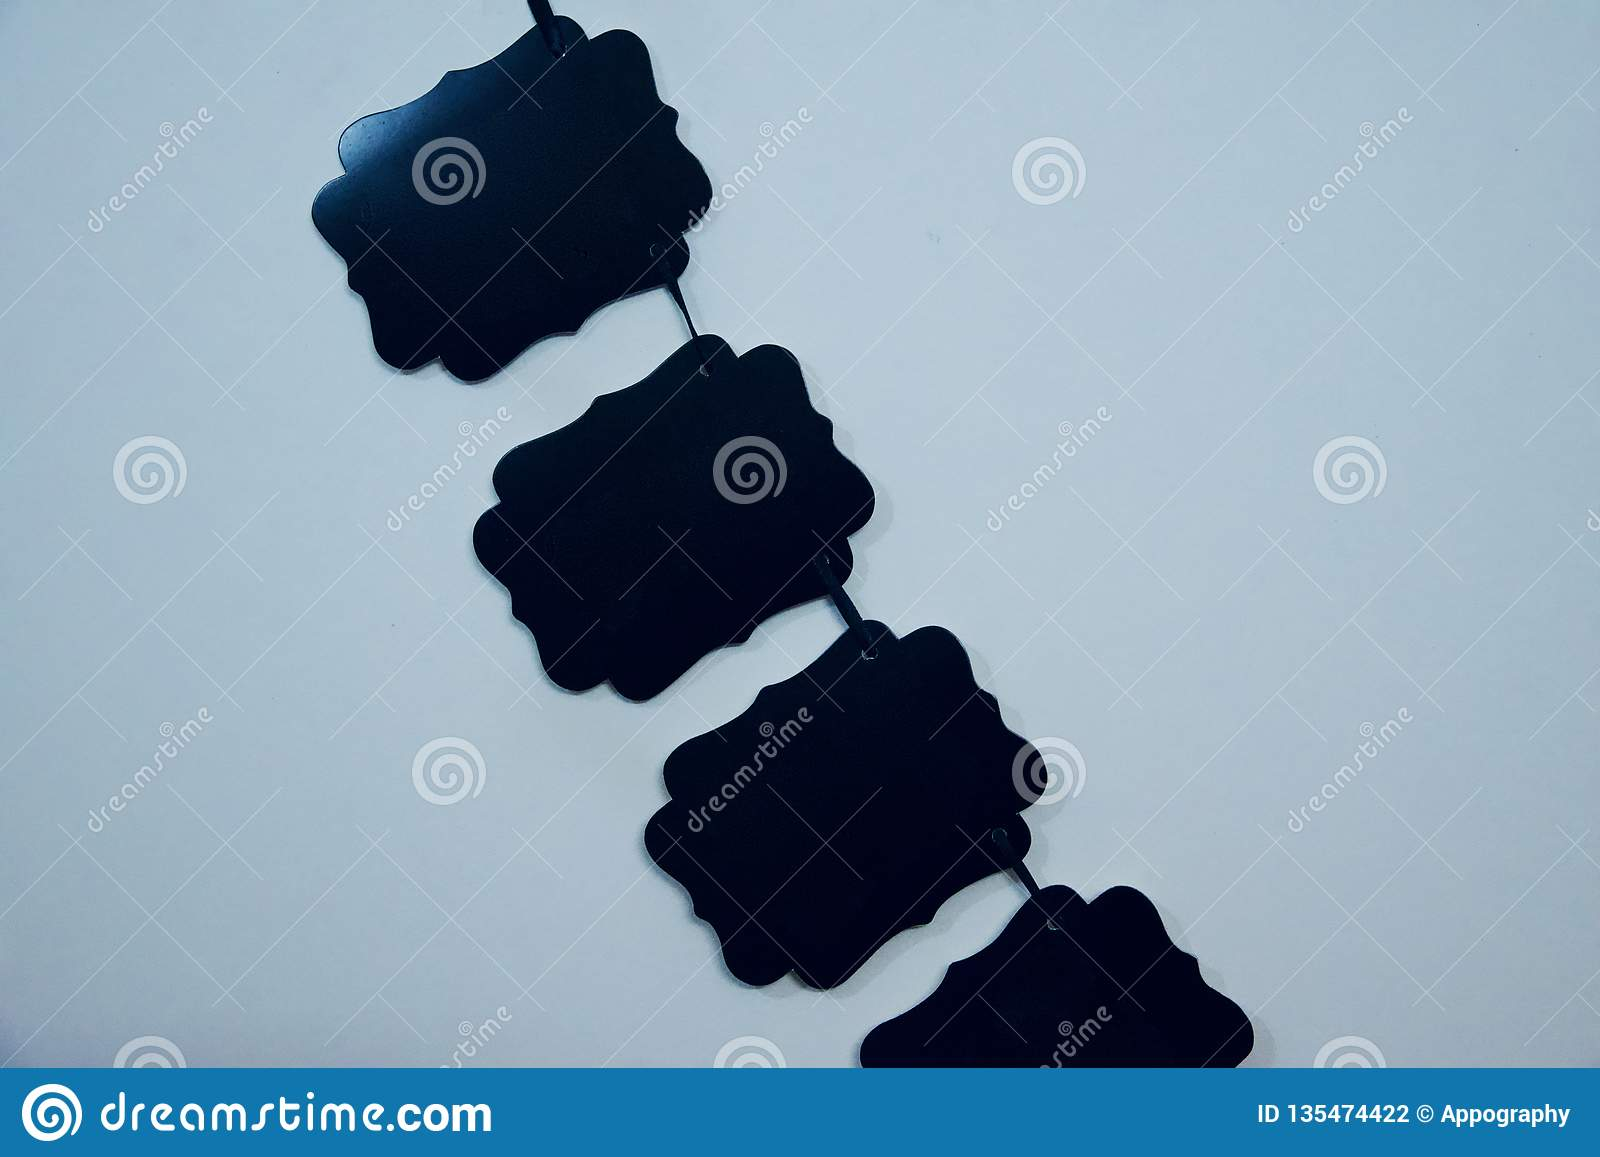 Black pieces of papers hanging on a wall